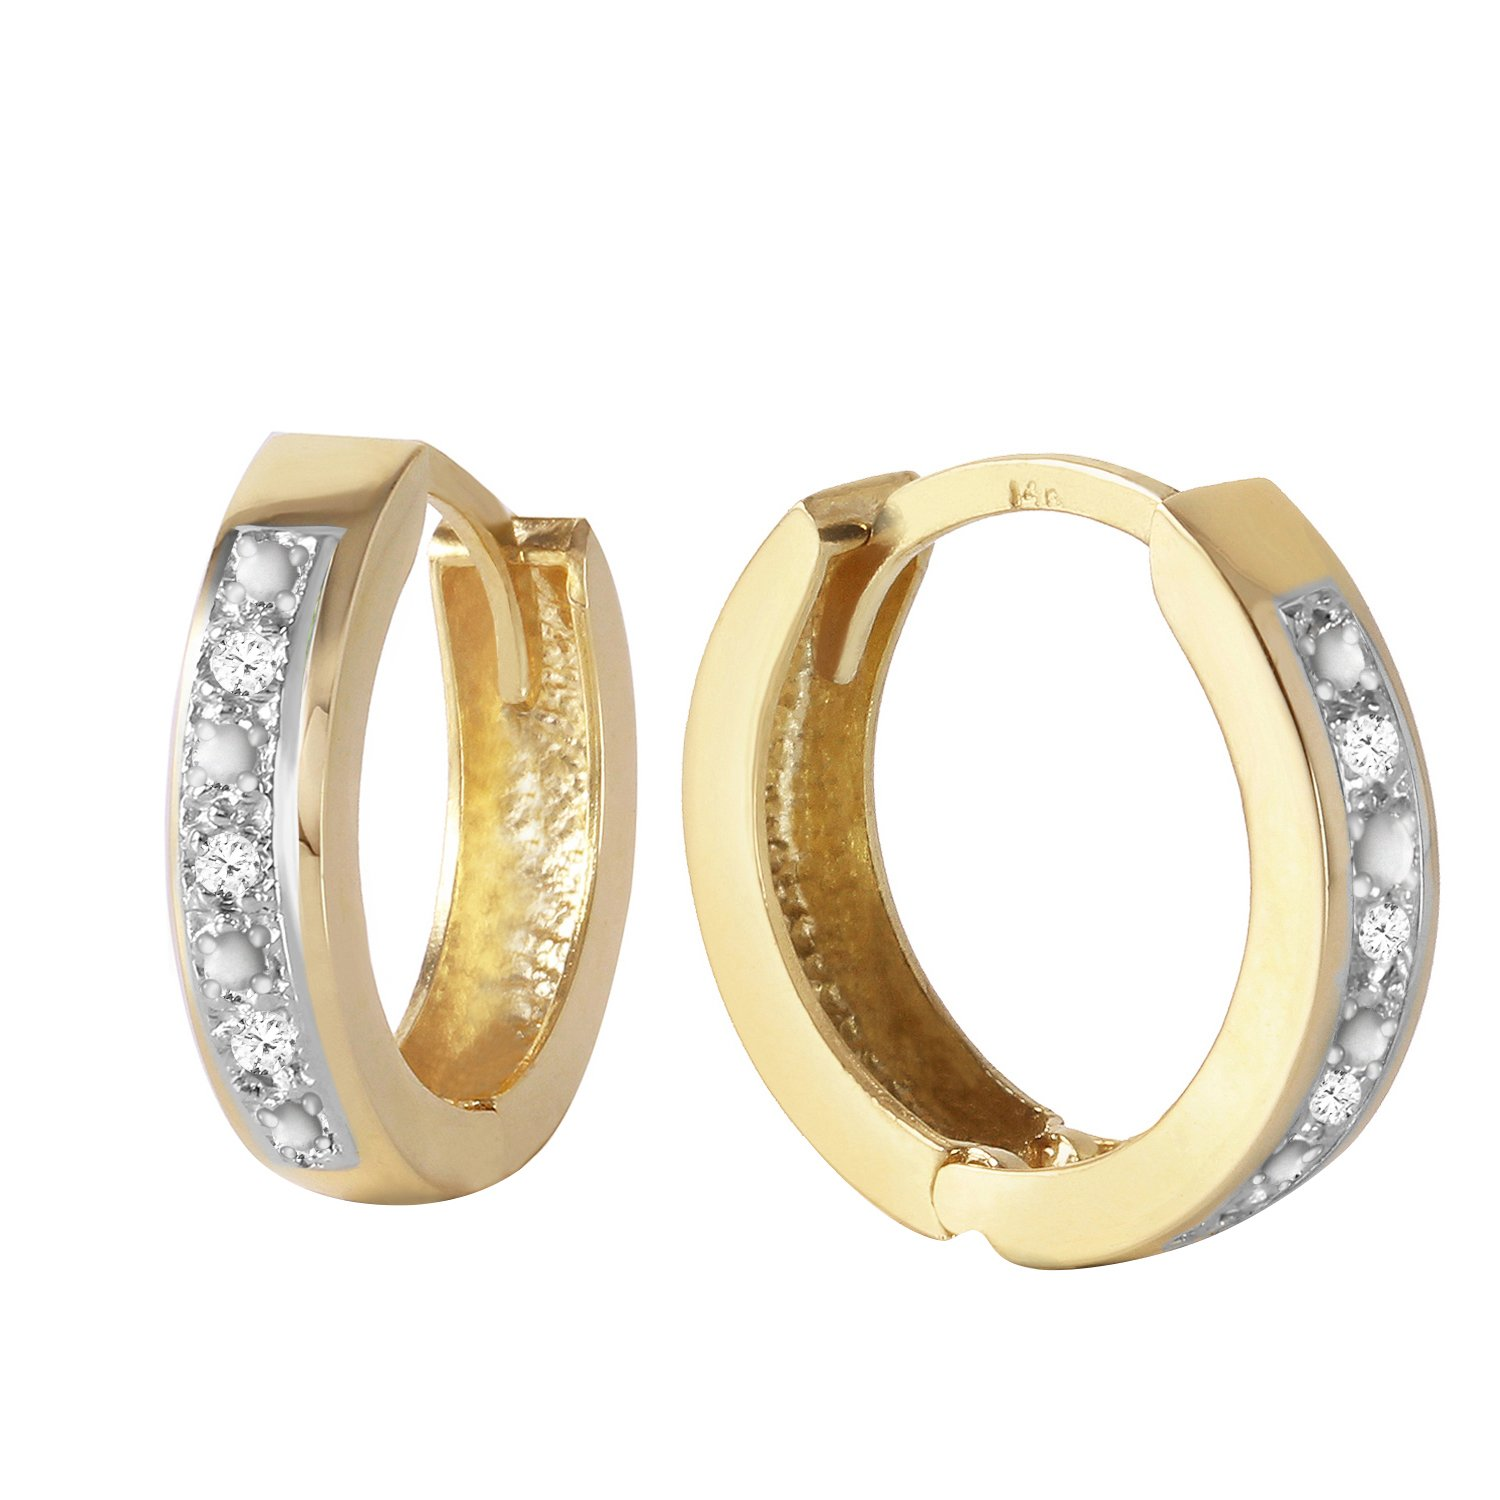 Galaxy Gold Genuine 14k Solid Yellow Gold Hoop Huggie Earrings with Stunning 0.04 Carat Natural Diamonds